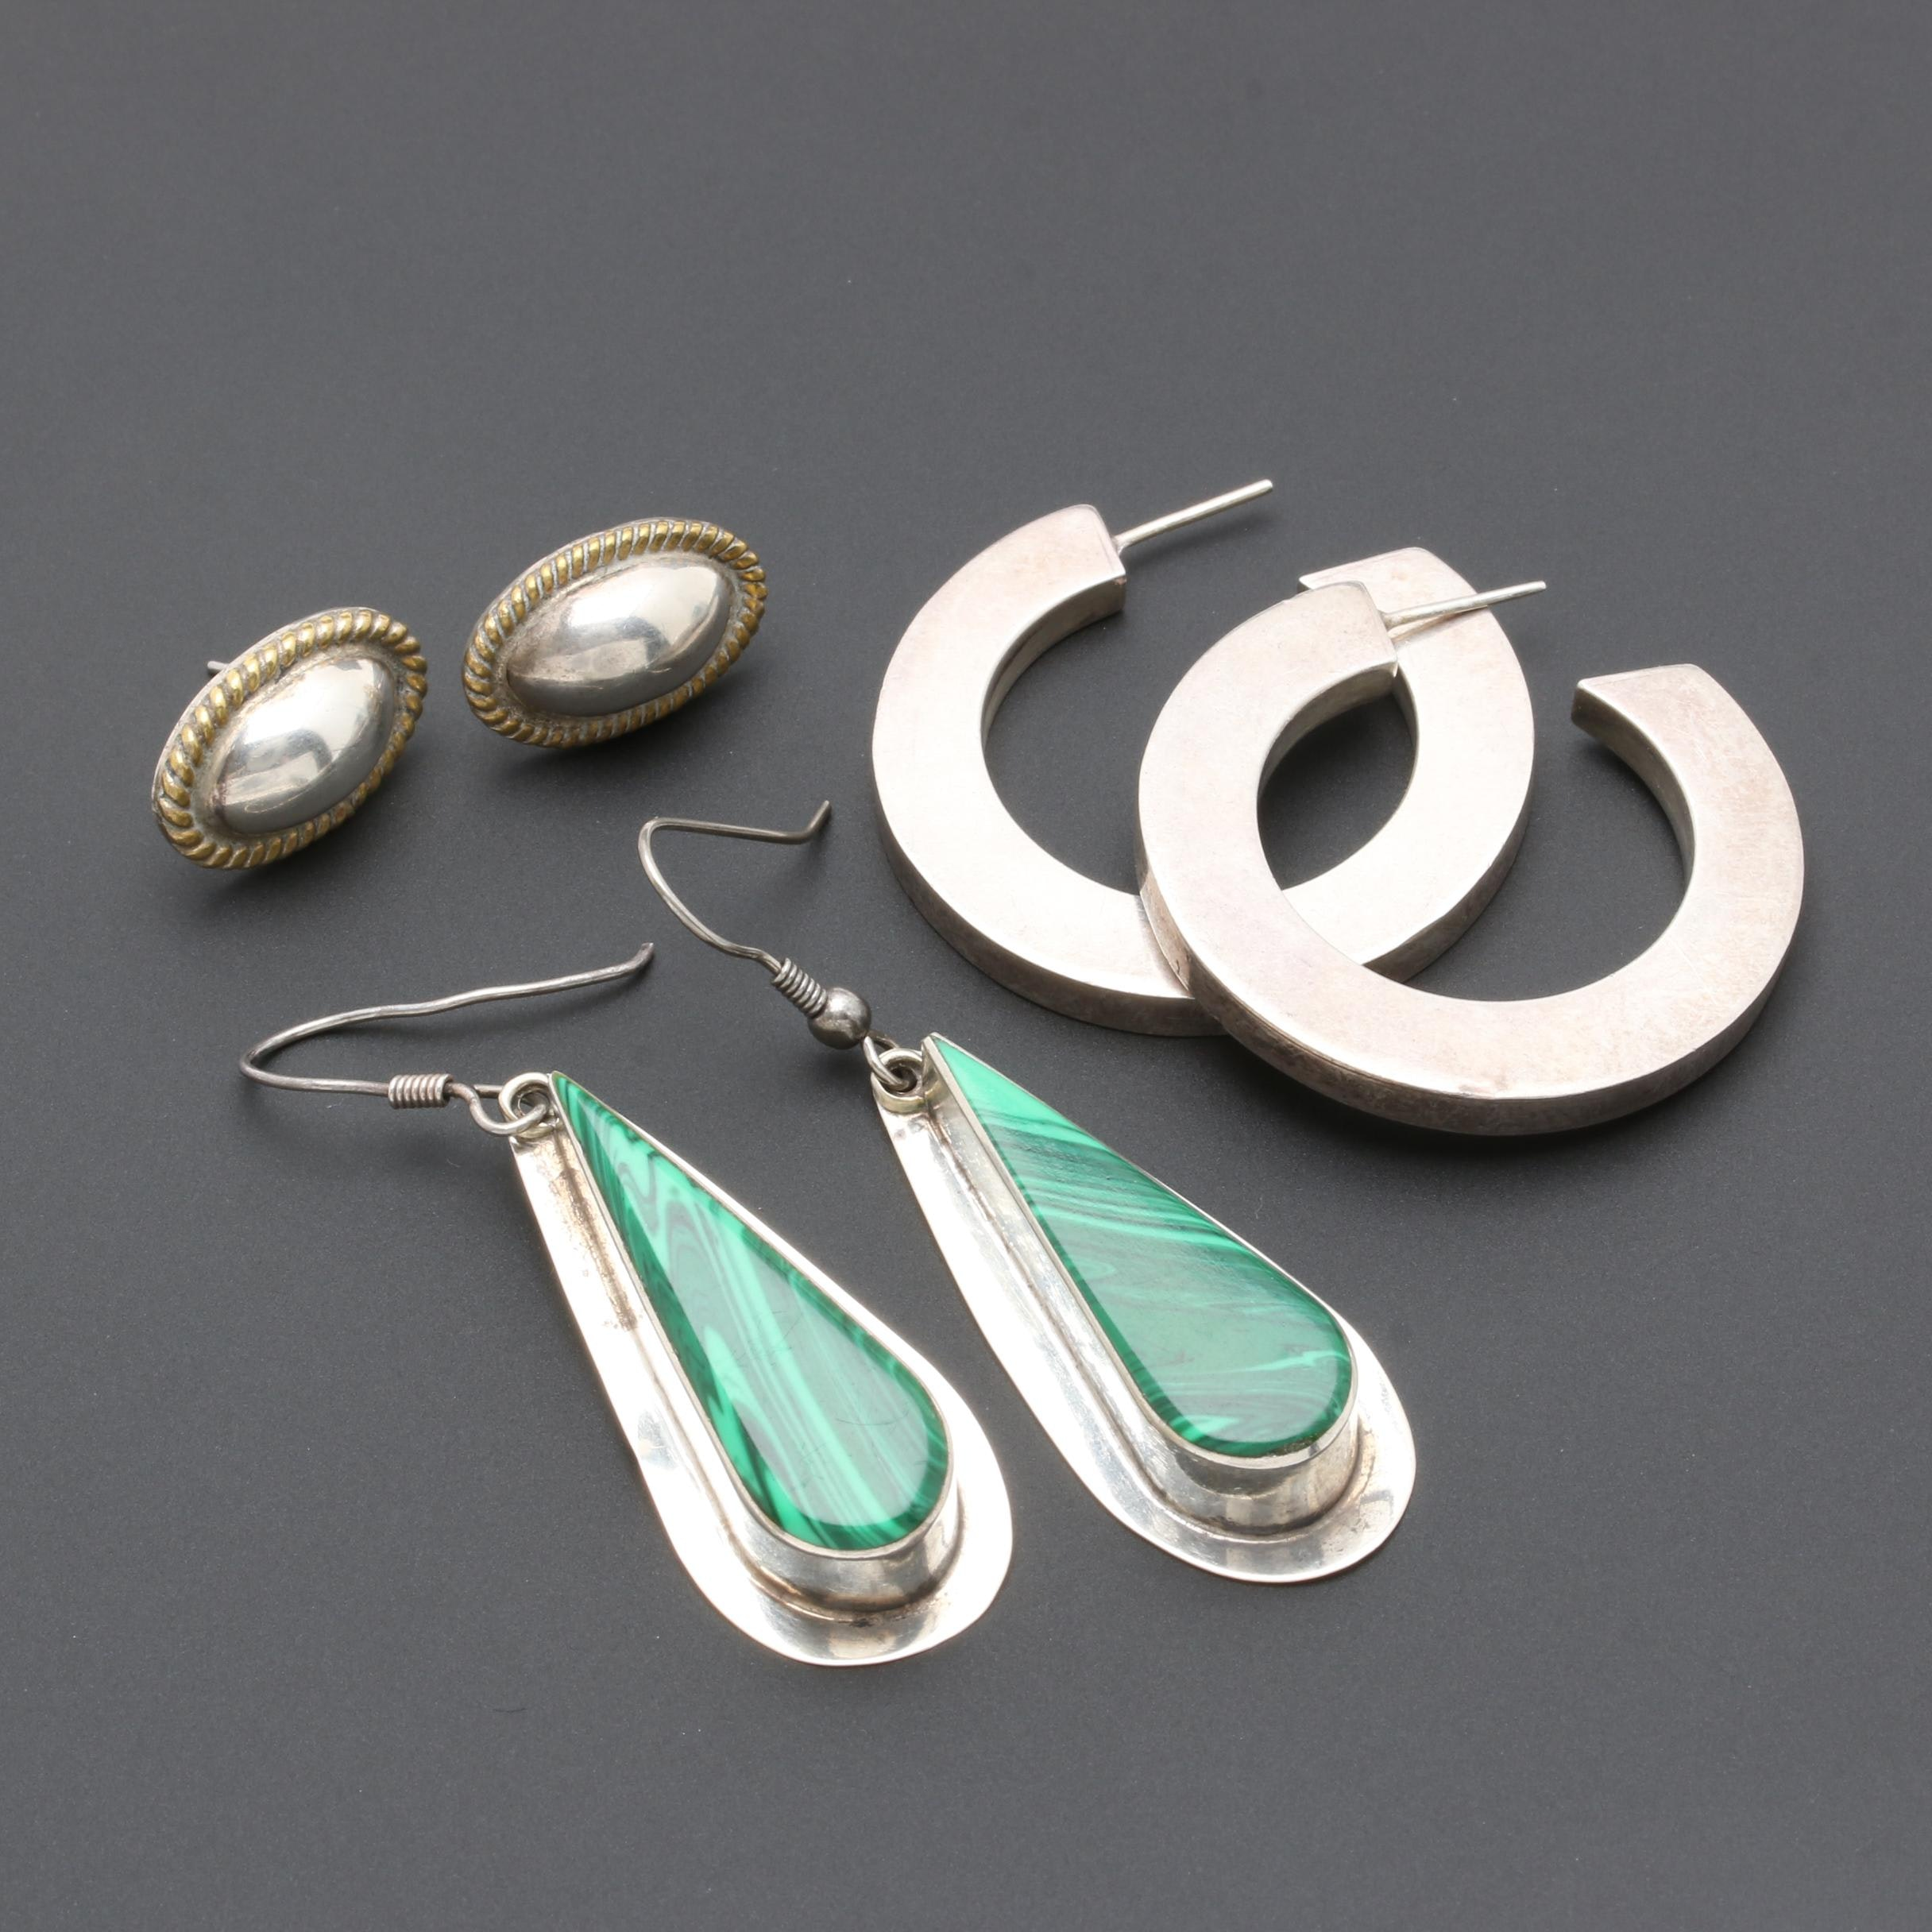 Sterling Silver Earrings Including Imitation Malachite and Taxco Pieces